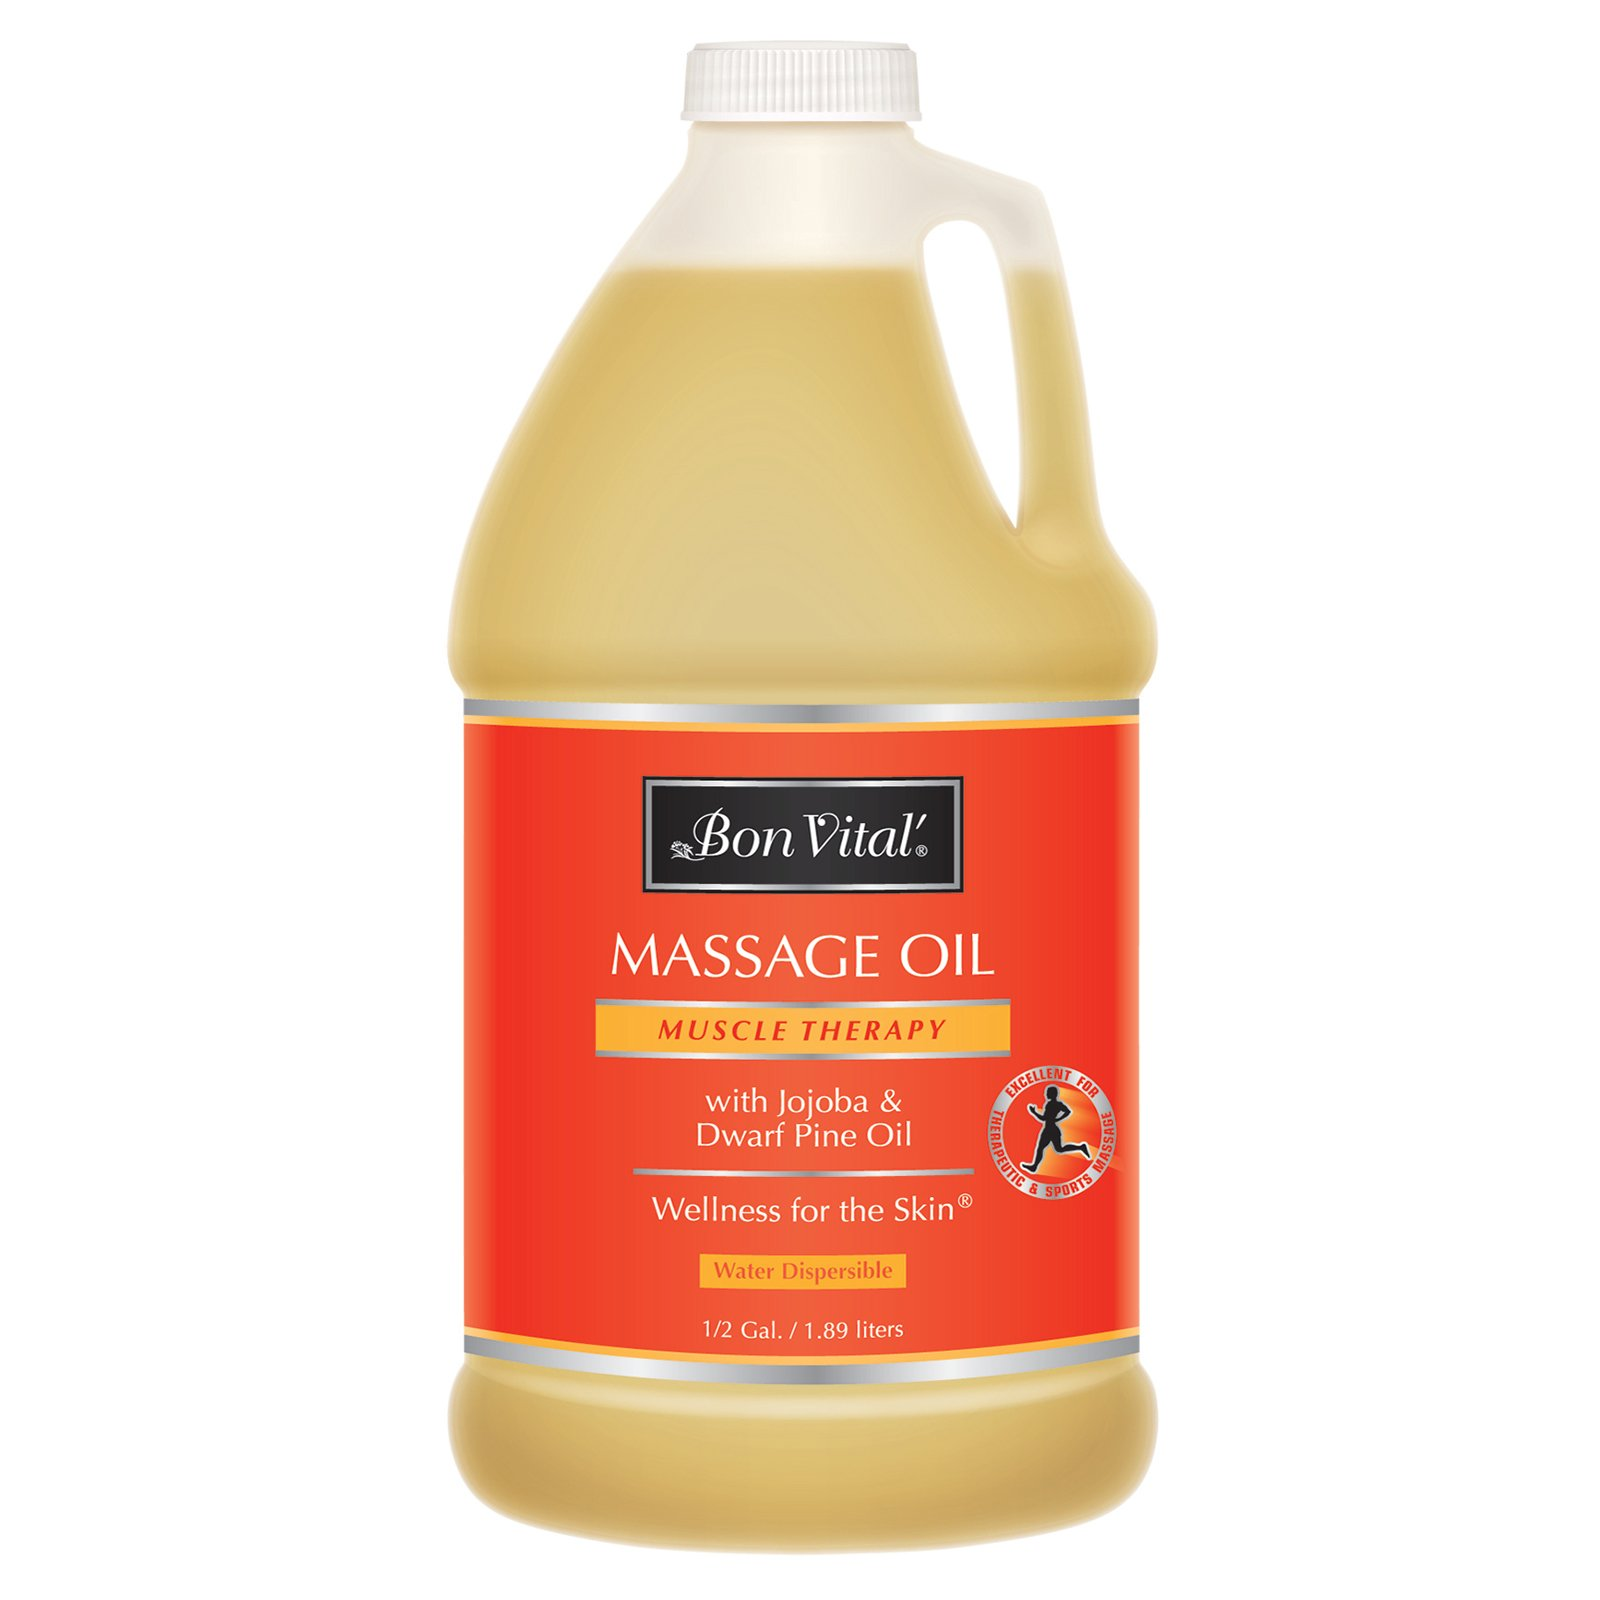 Bon Vital' Muscle Therapy Massage Oil Made with Dwarf Pine Oil & Essential Oils for a Relaxing Massage & Sore Muscle Relief, Can Be Combined with the IASTM and Graston Techniques, 1/2 Gallon Bottle